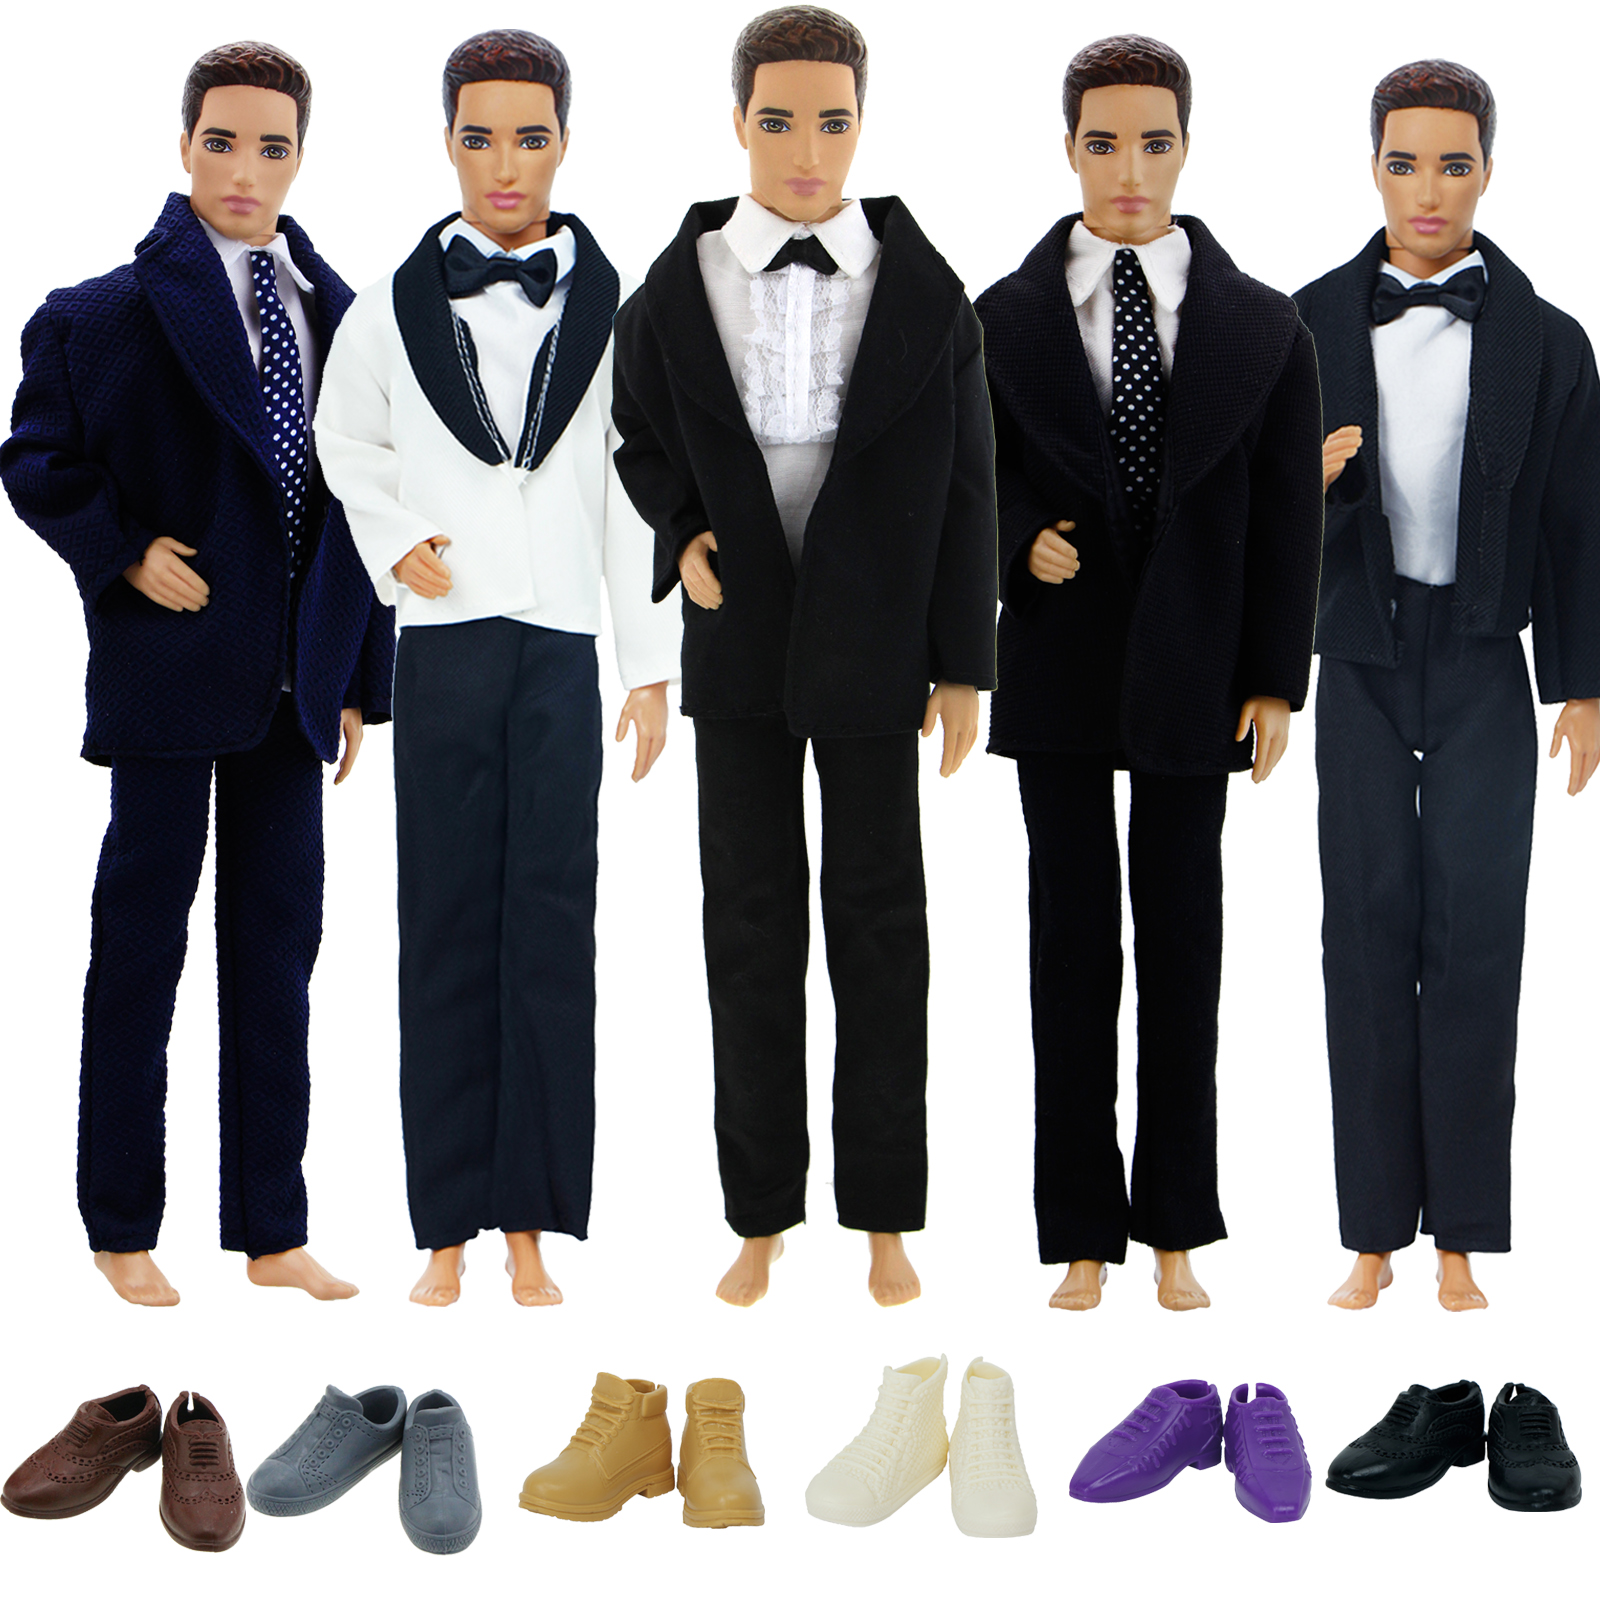 Handmade Men's Outfit For Barbie Doll Friend Ken Doll Wear Tuxedo Business Modern Suit Coat Shirt Shoes Clothes Accessories Toy